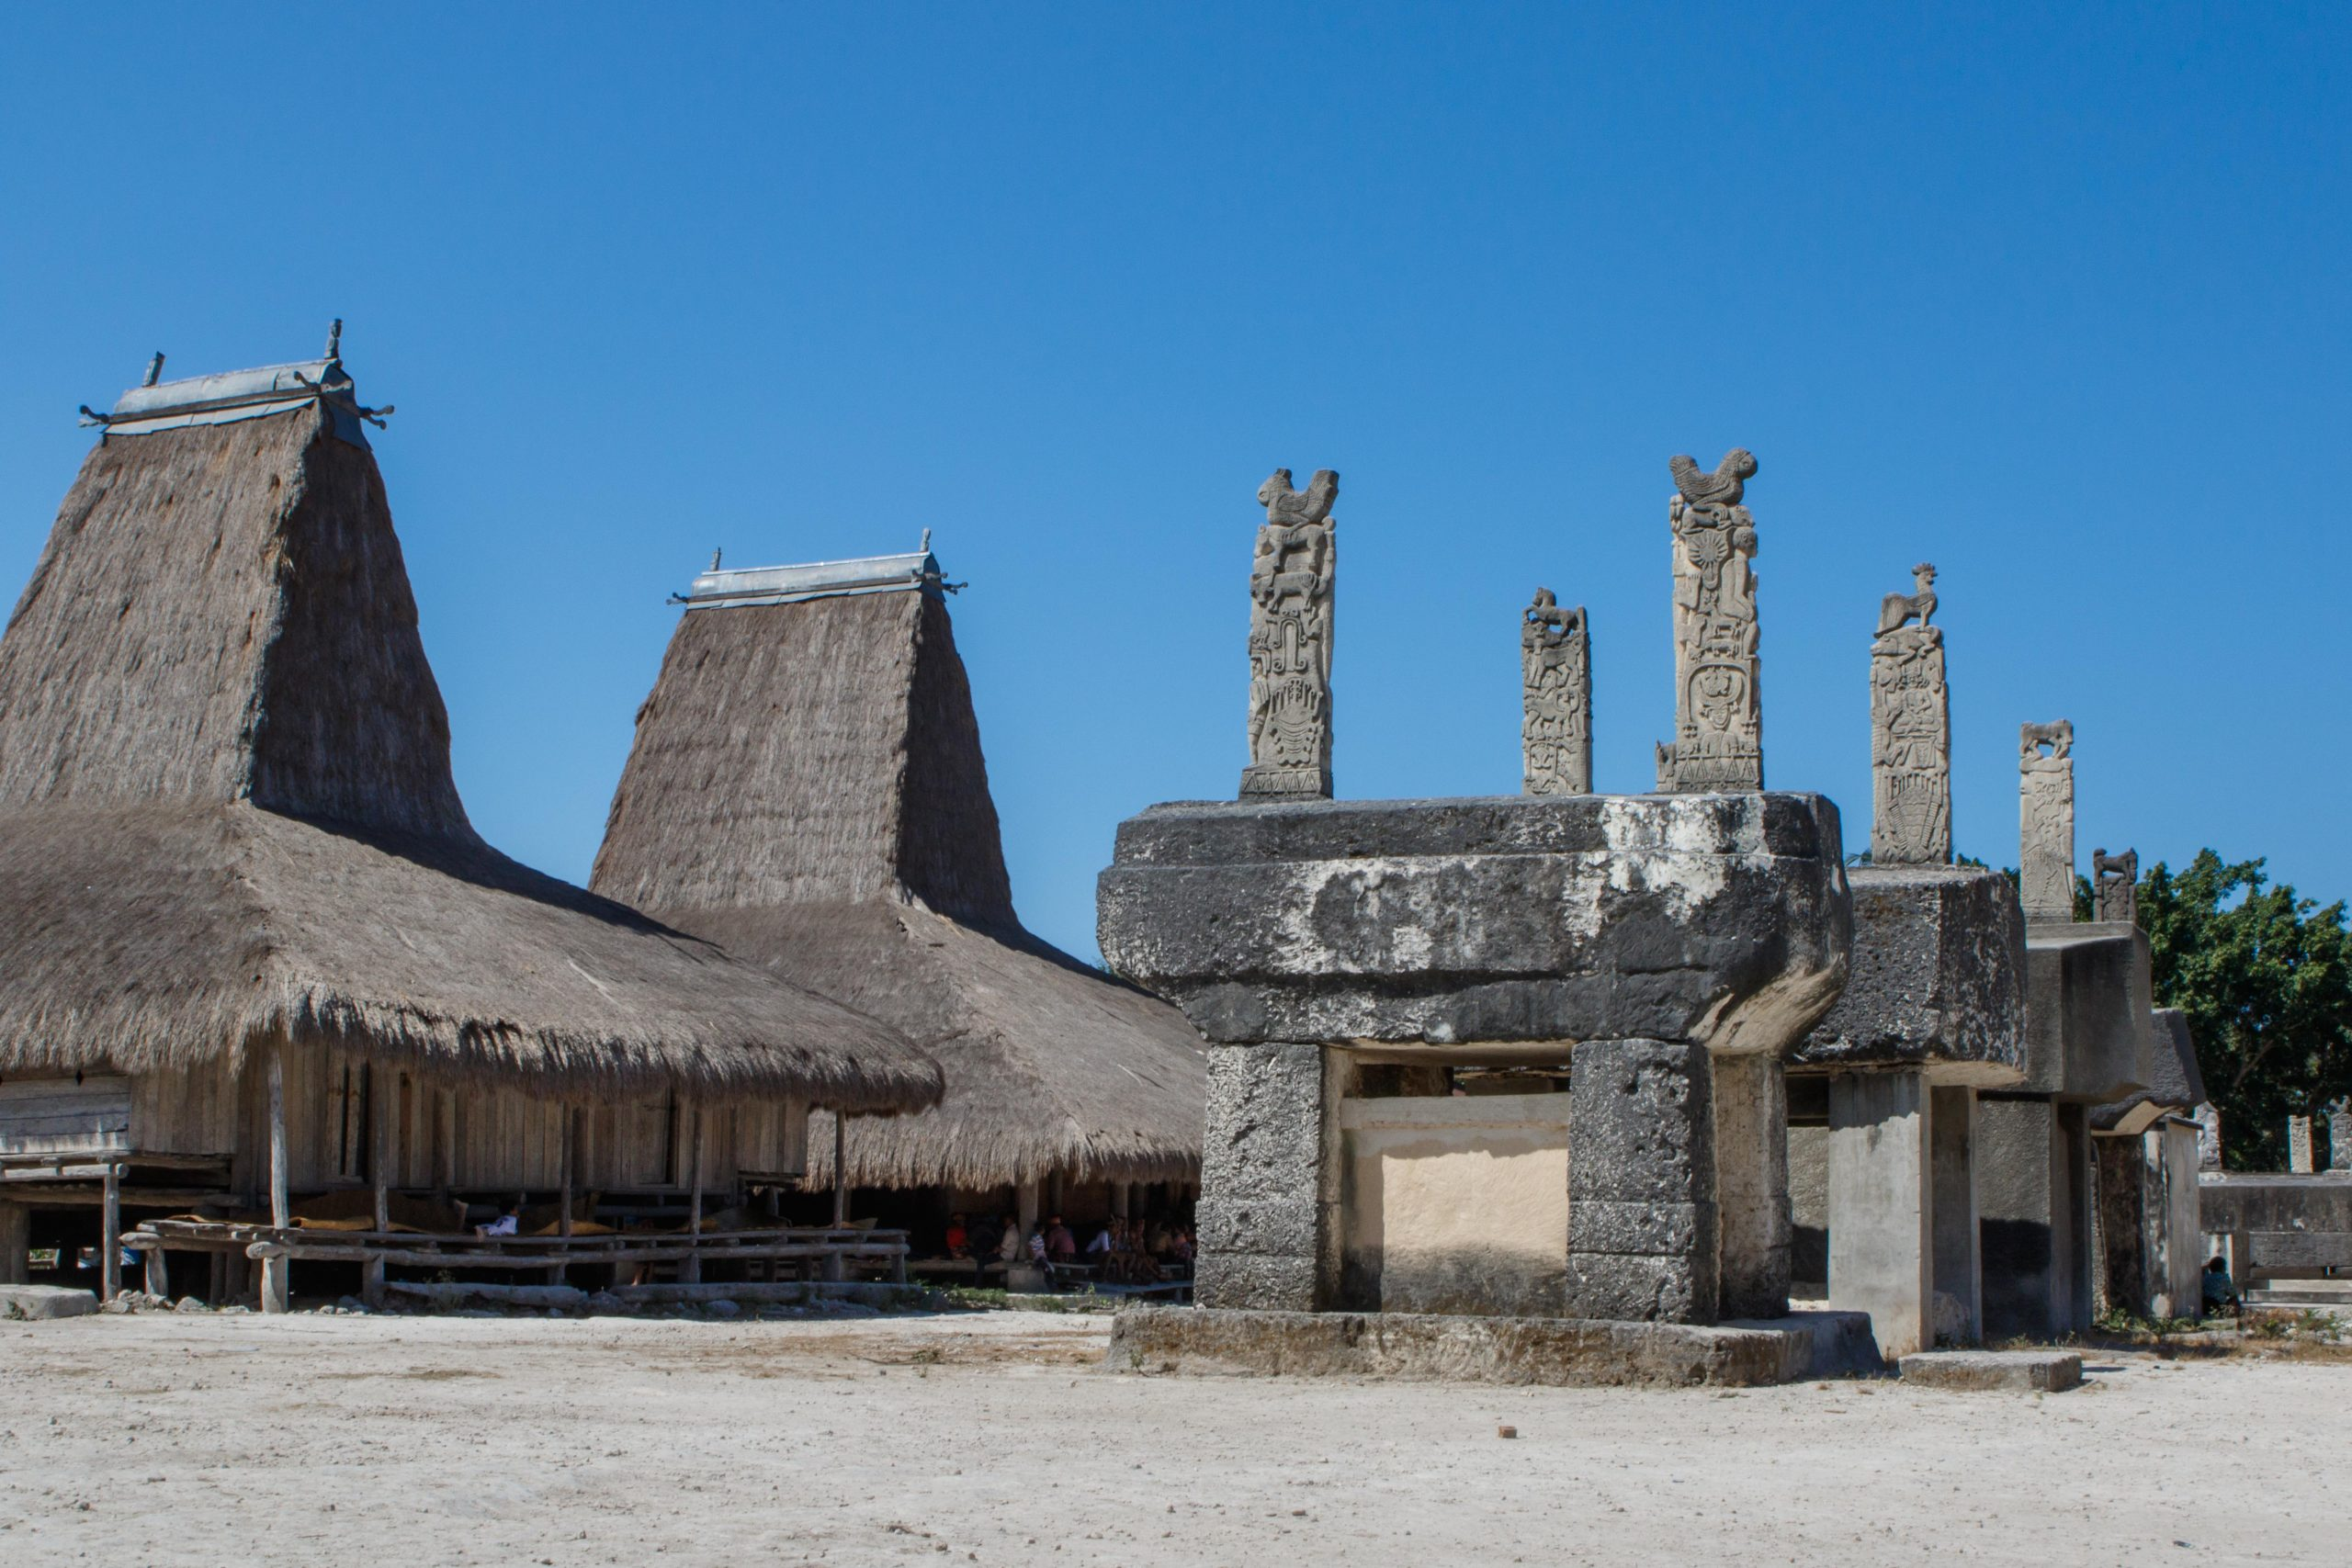 Melolo, East Sumba